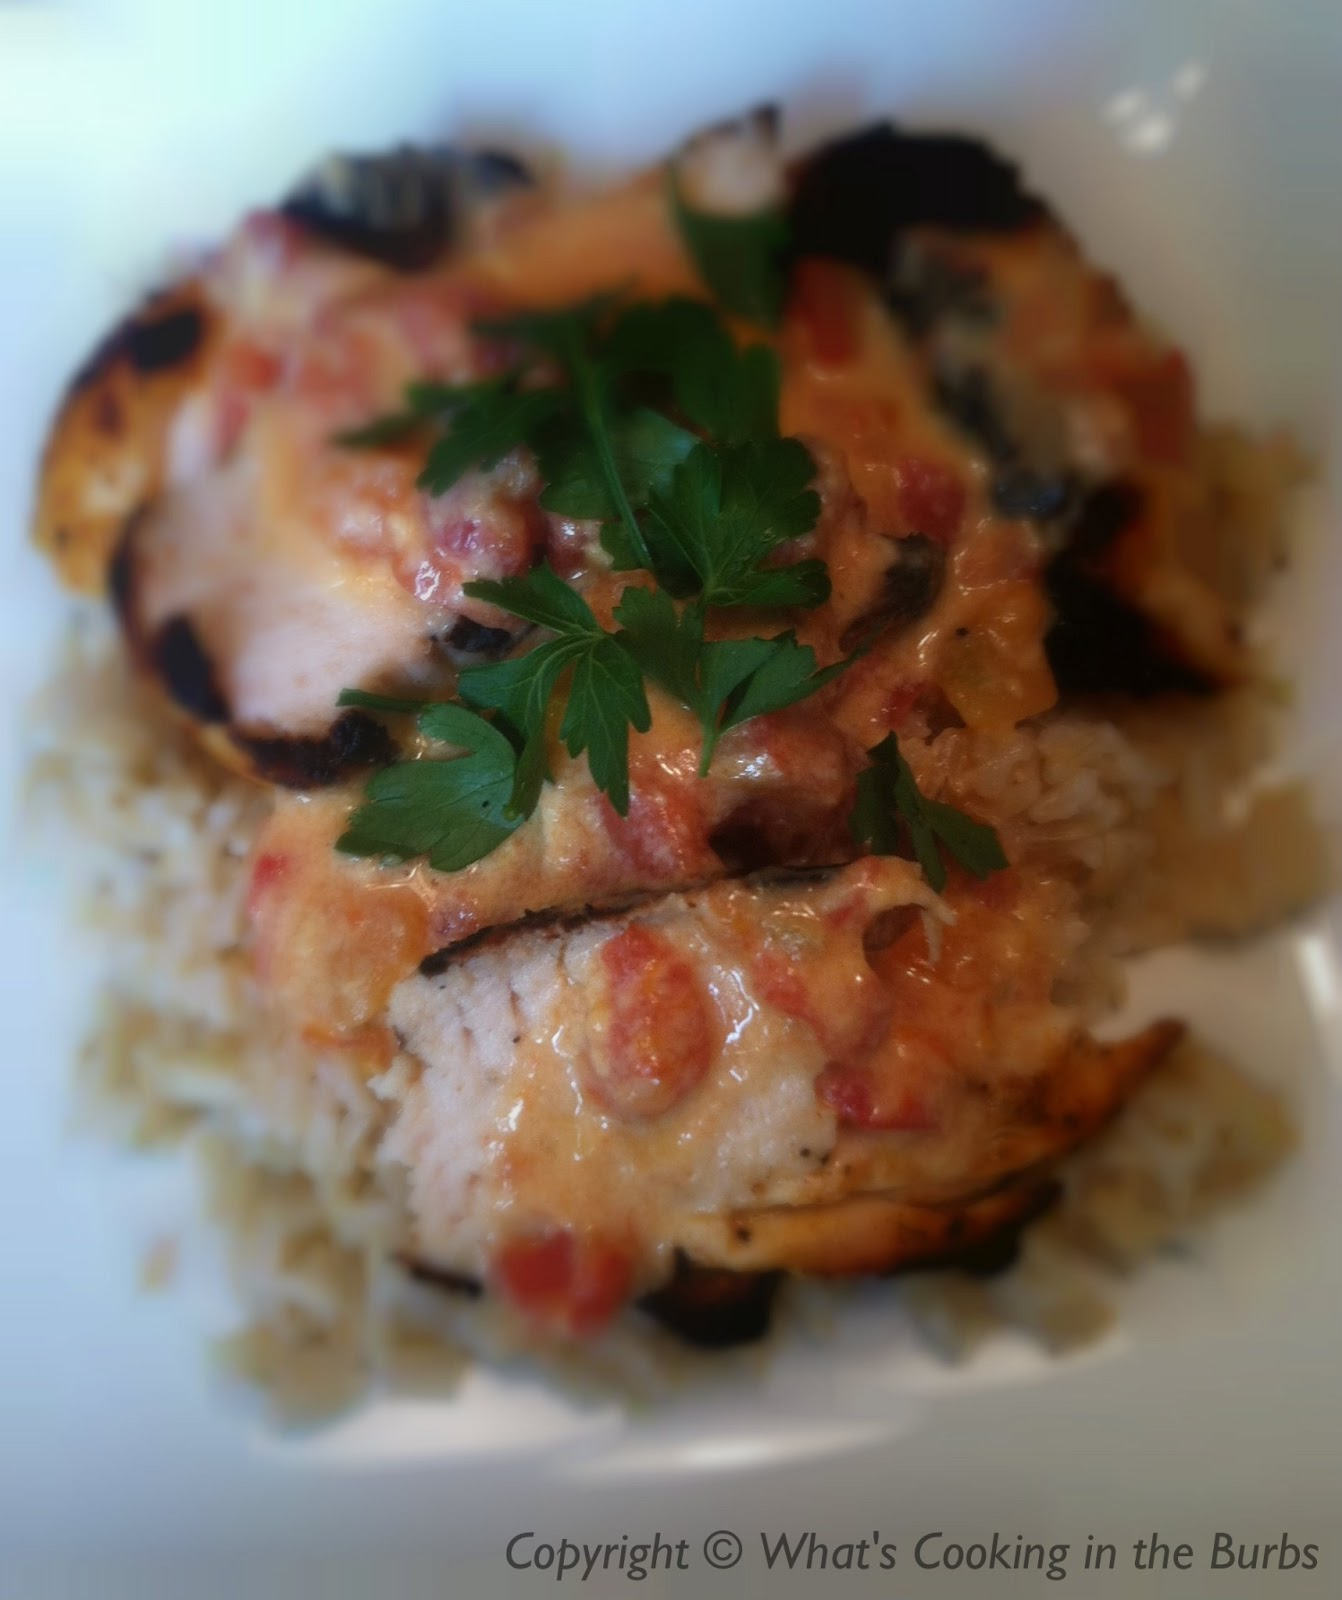 What's Cooking in the Burbs: Queso Smothered Chicken